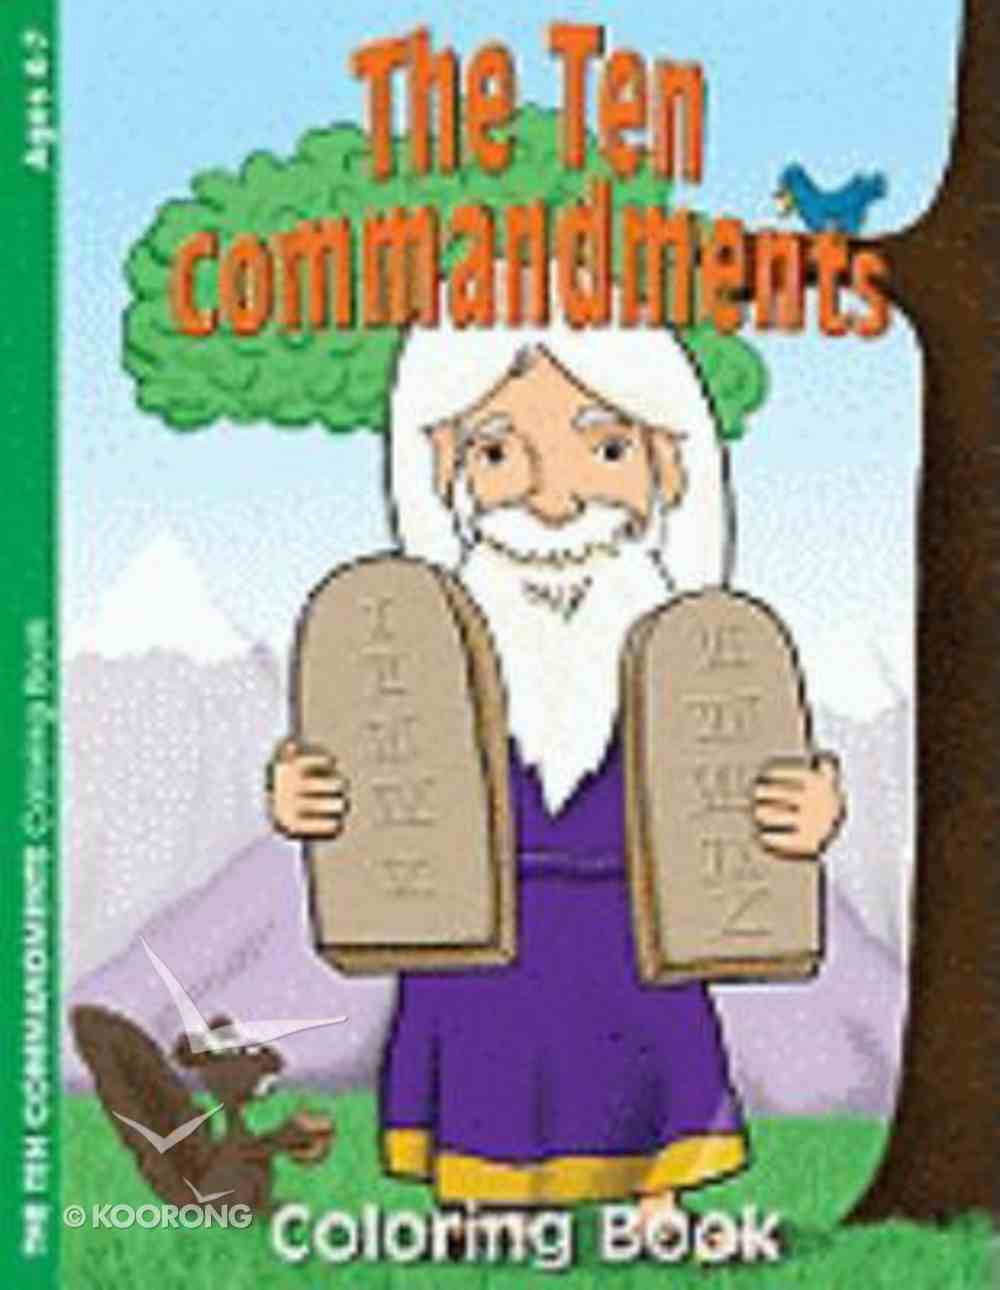 The Ten Commandments (Ages 4-7, Reproducible) (Warner Press Colouring & Activity Books Series) Paperback